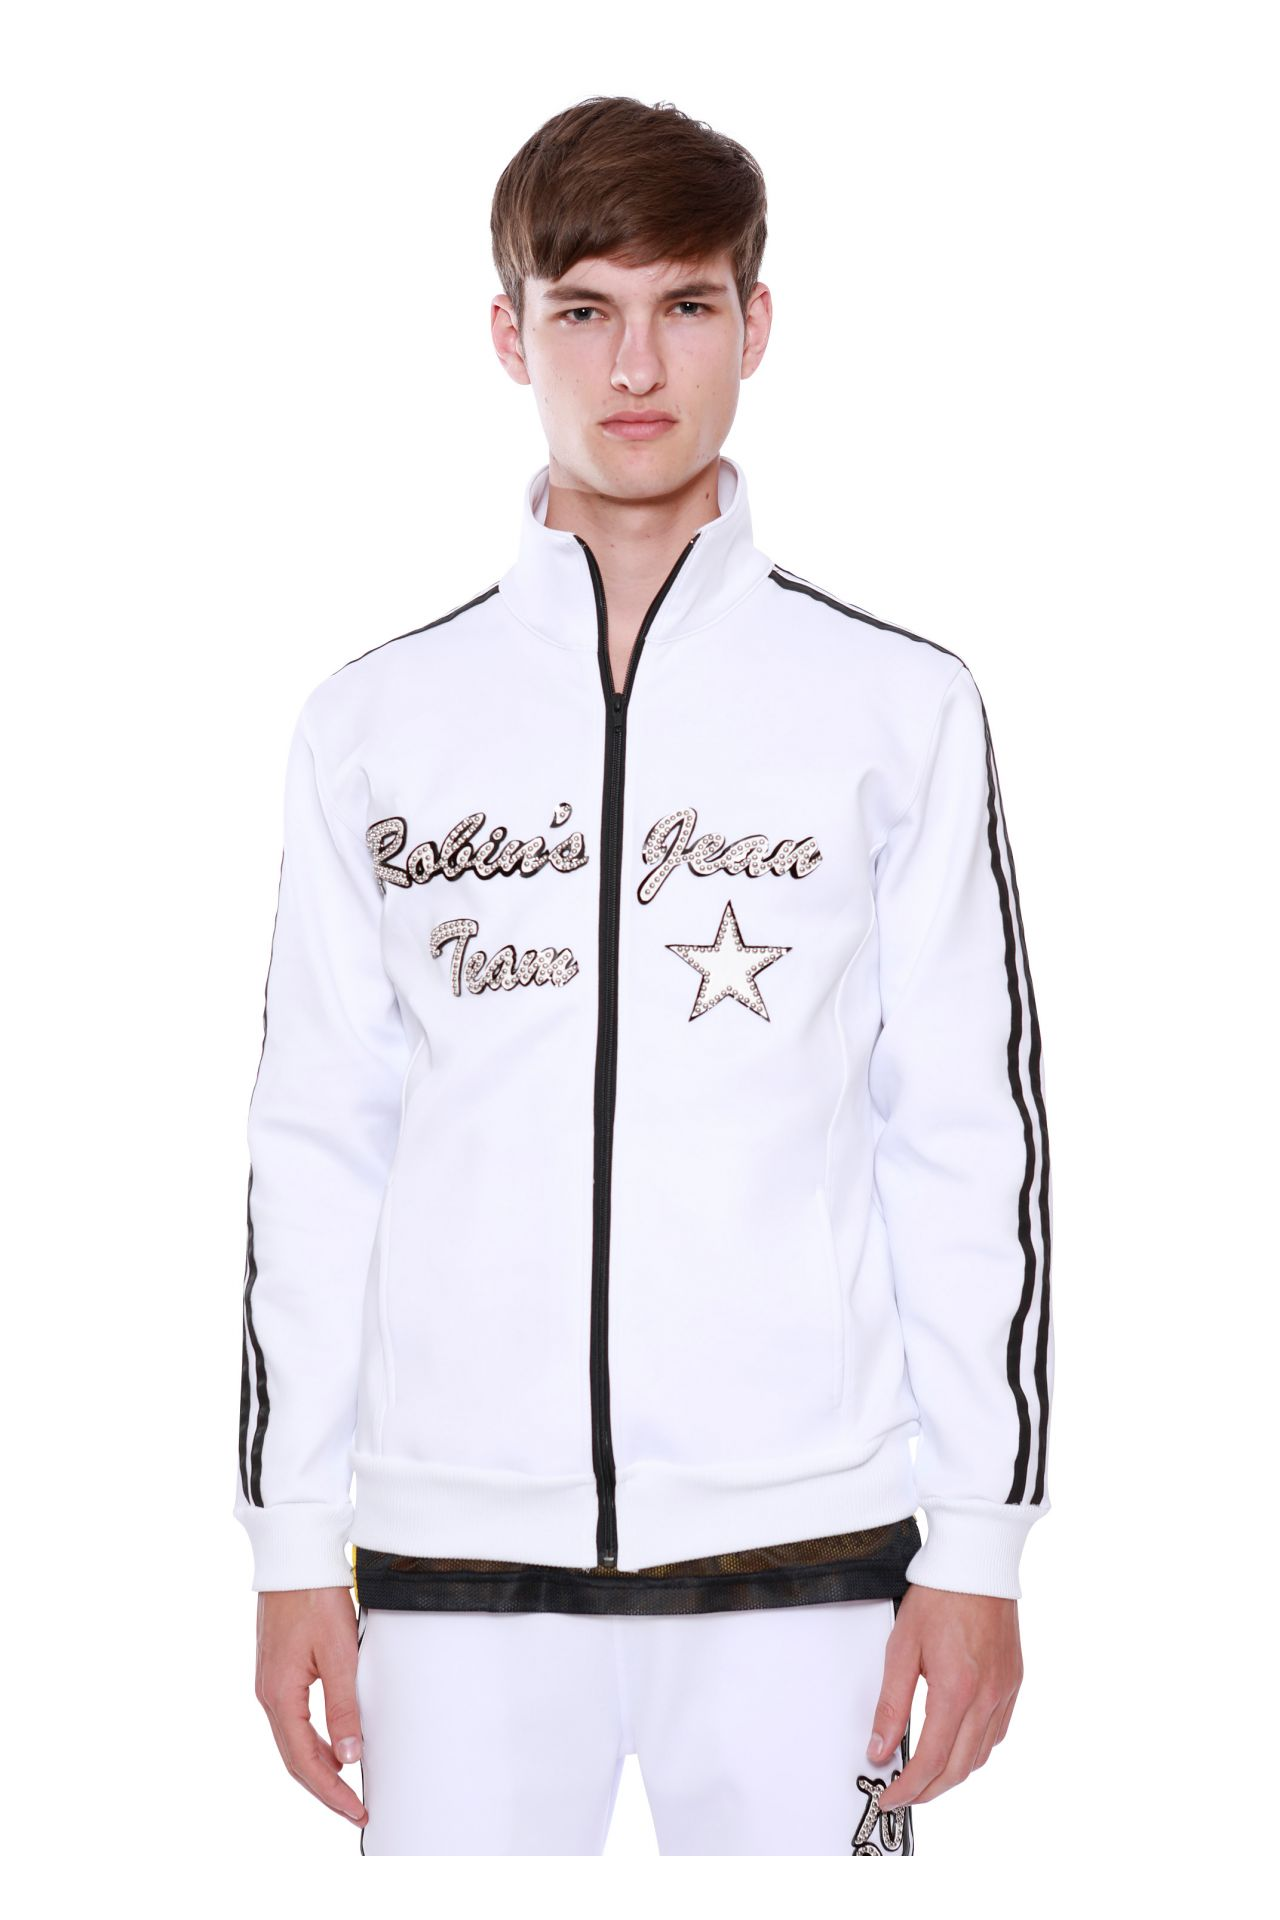 TEAM ROBIN'S JEAN TRACK JACKET IN WHITE